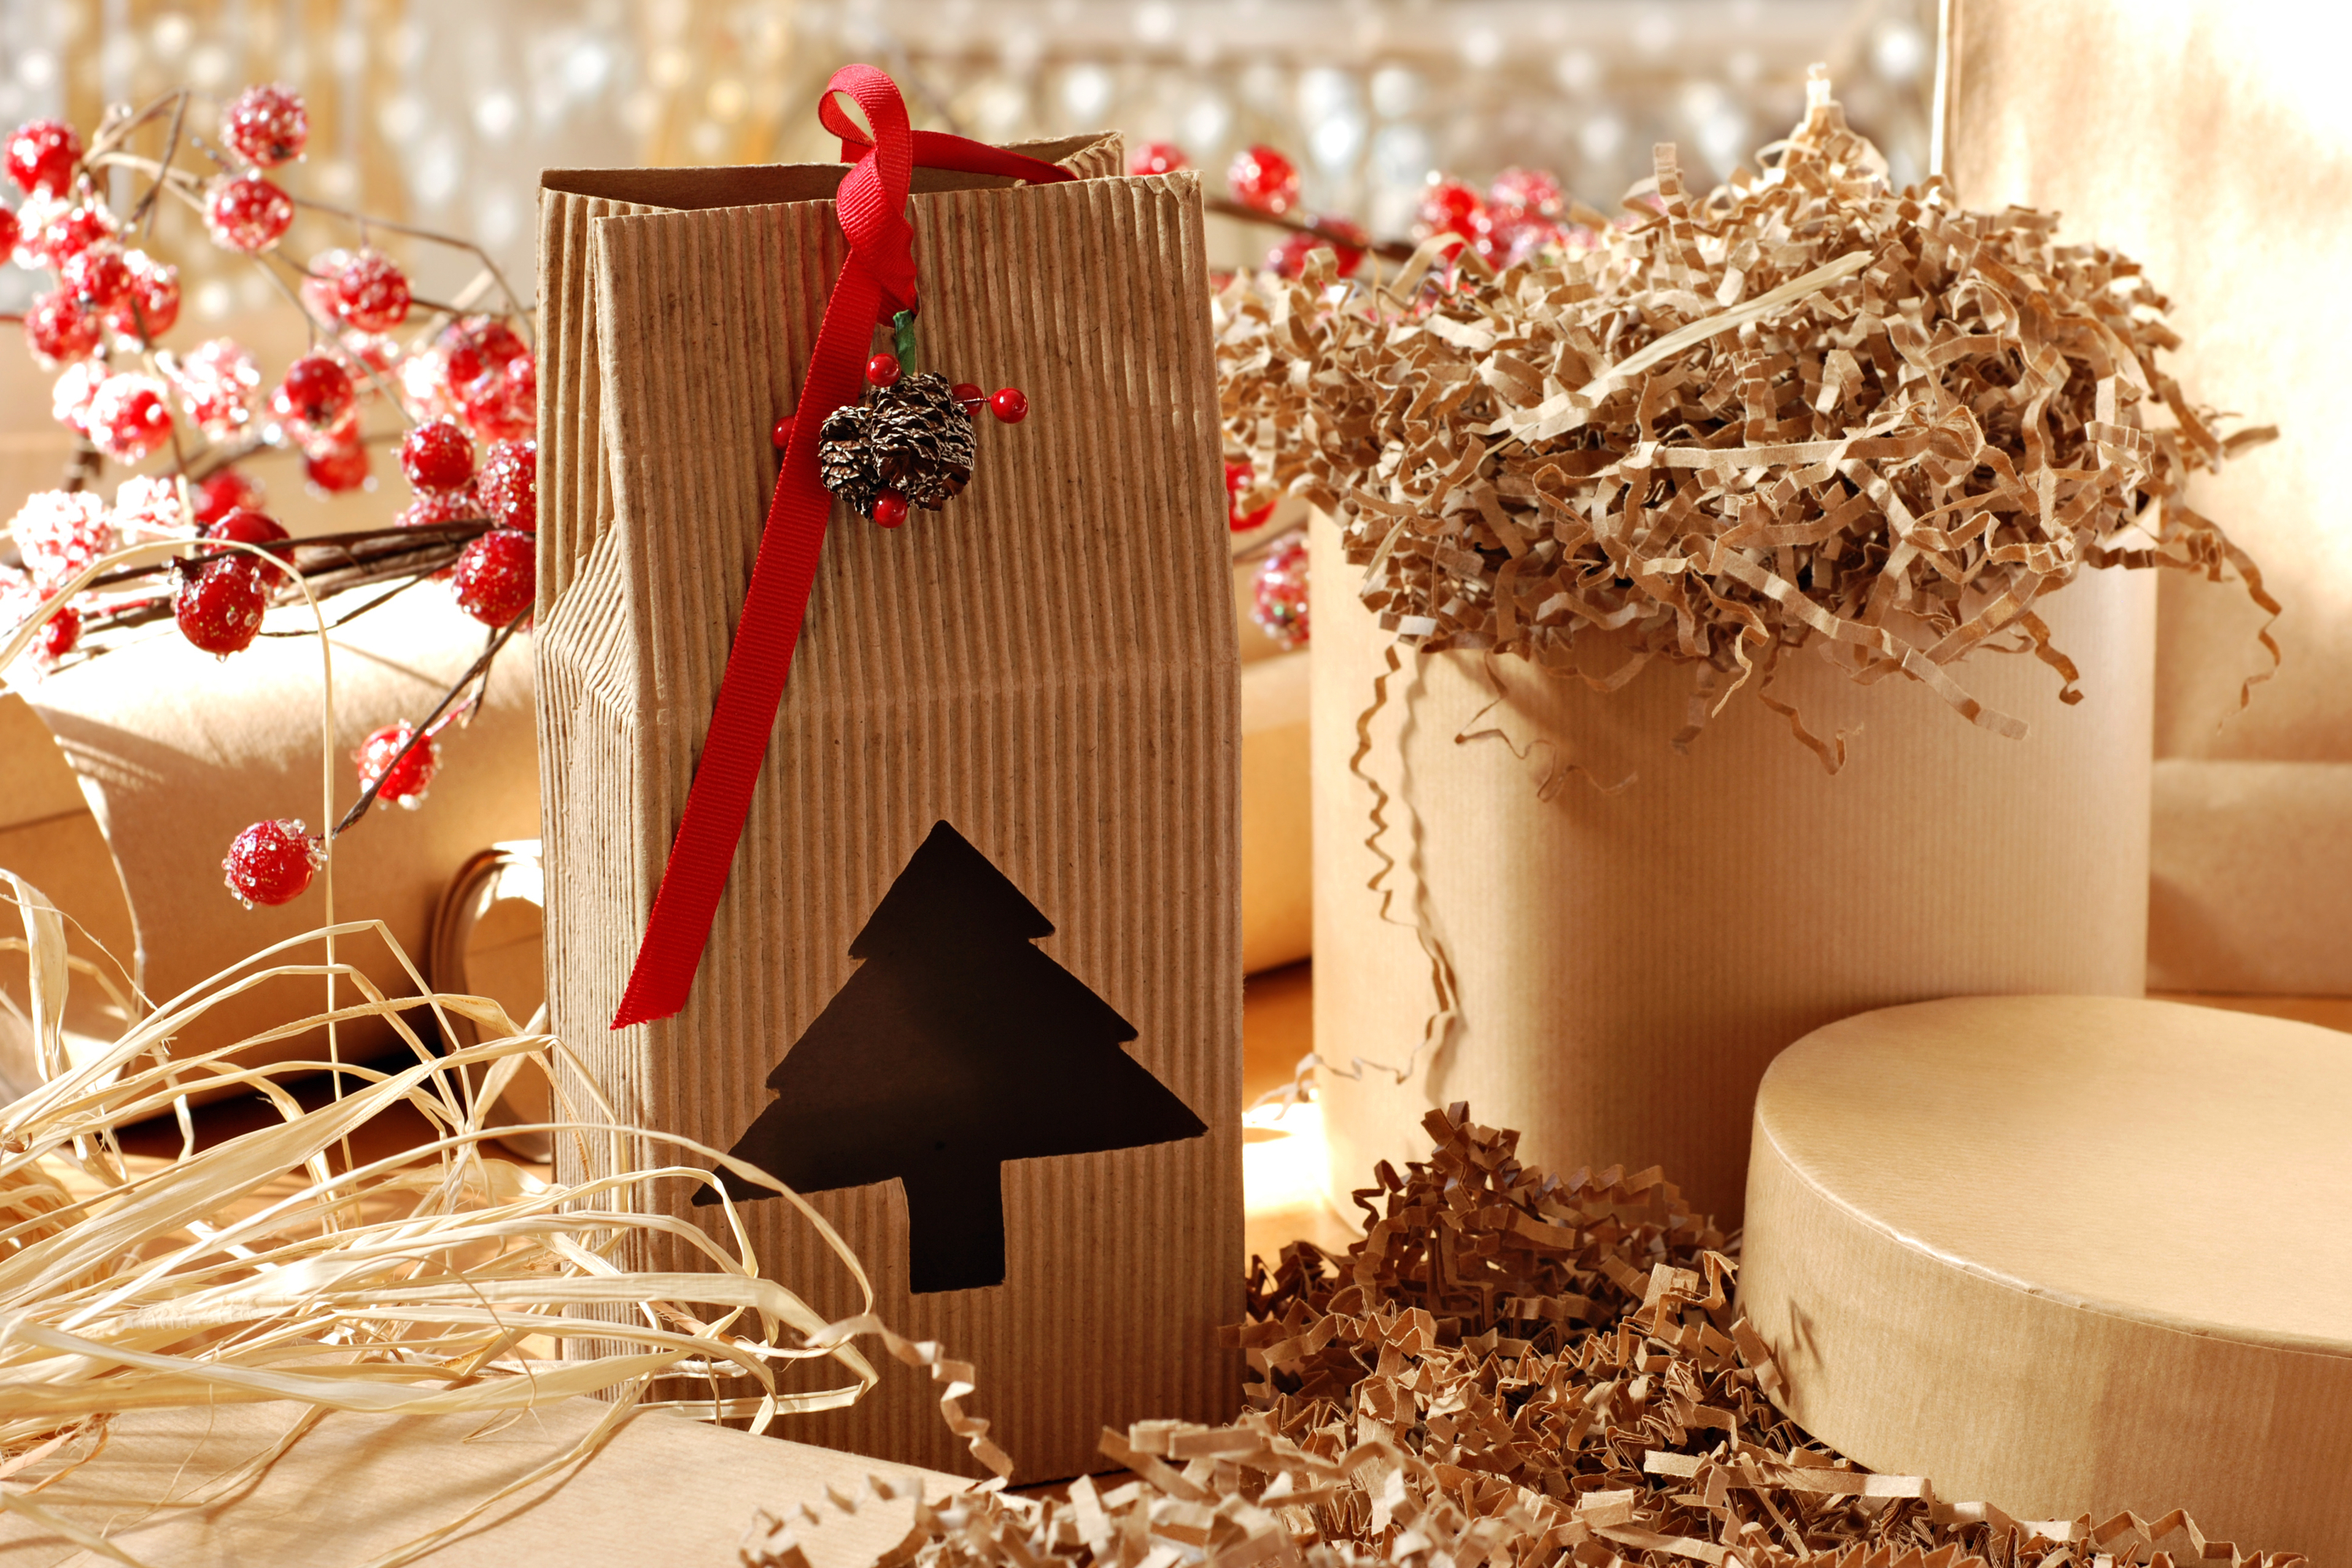 Christmas paper bag gift with tree cutout and red ribbon.